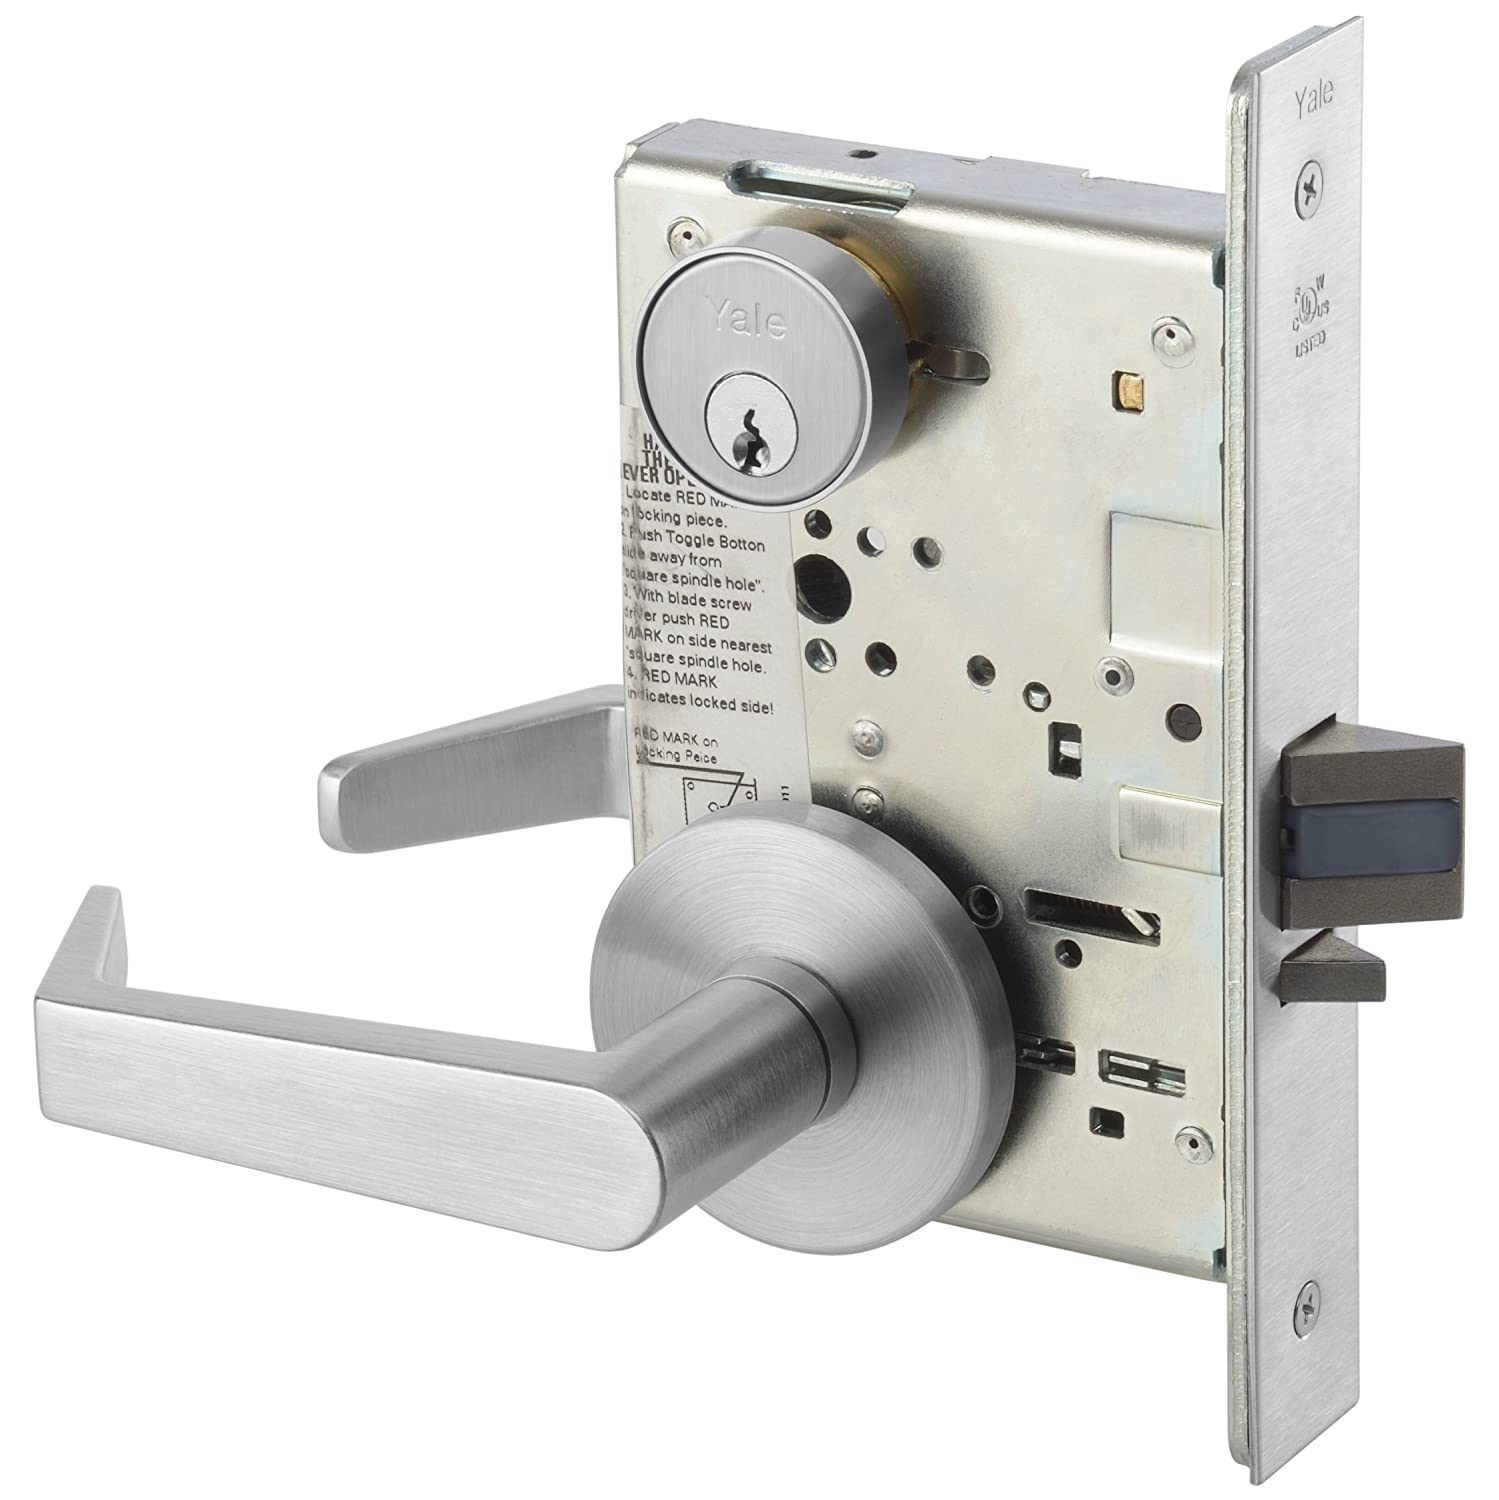 Yale AUCN 8801FL-626 Passage Function Mortise Lock